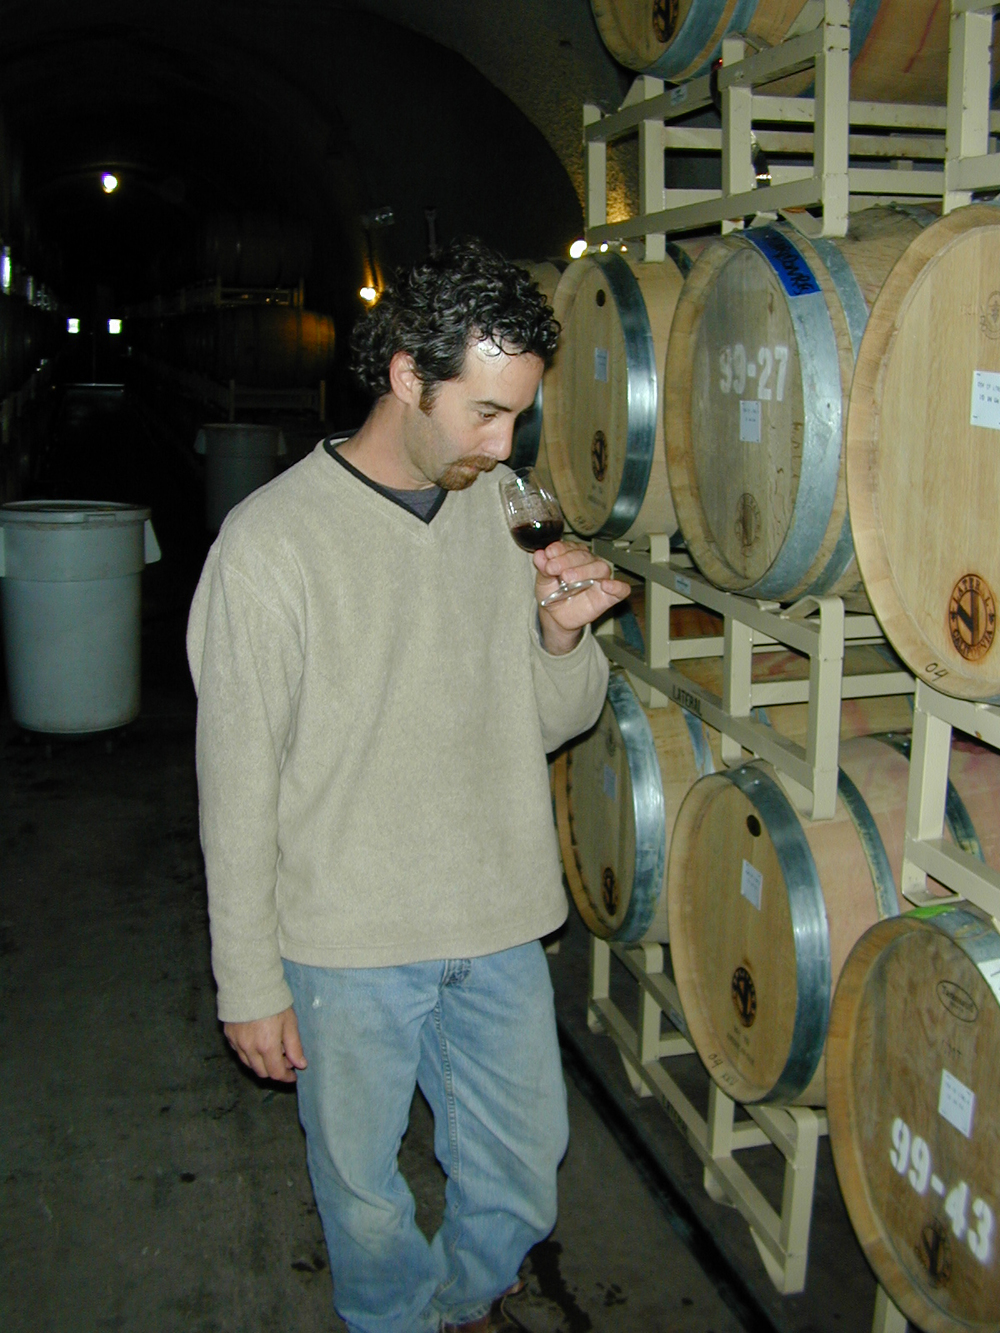 Chris_winemaker_Kunde2003?.jpg